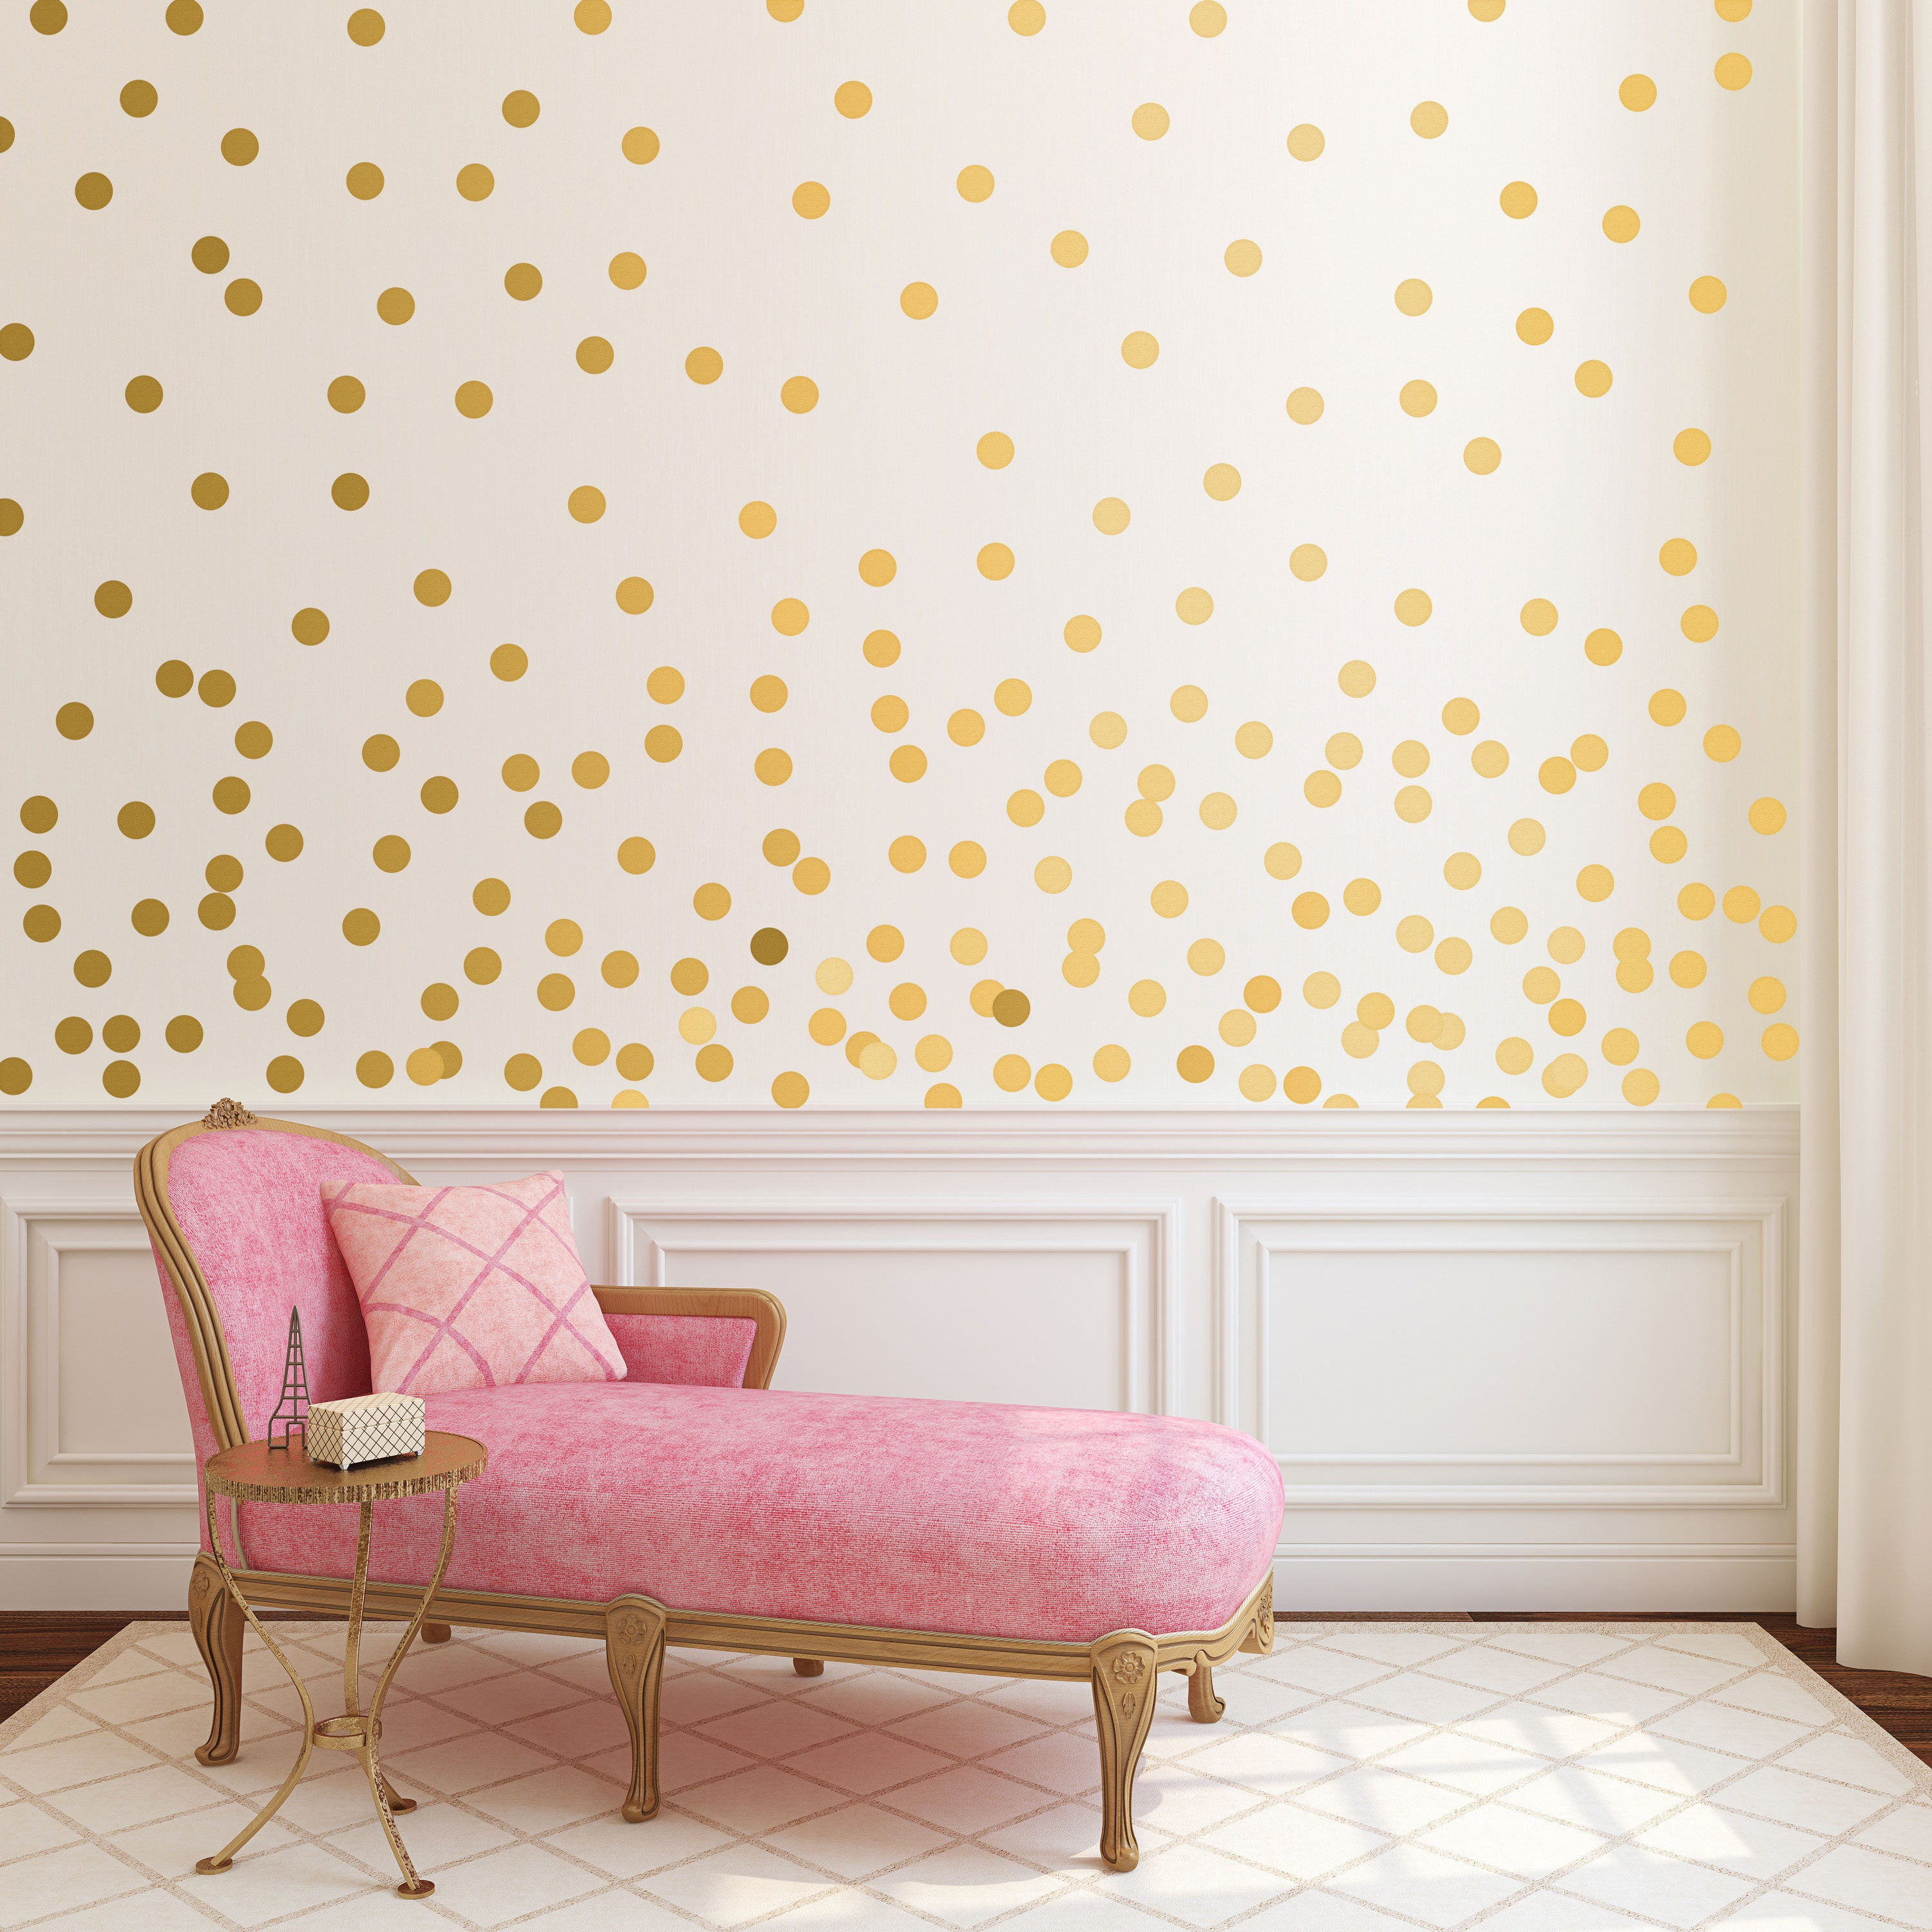 Gold dot wall decals metallic gold polka dots gold wall description easy peel and stick polka dots decals amipublicfo Images